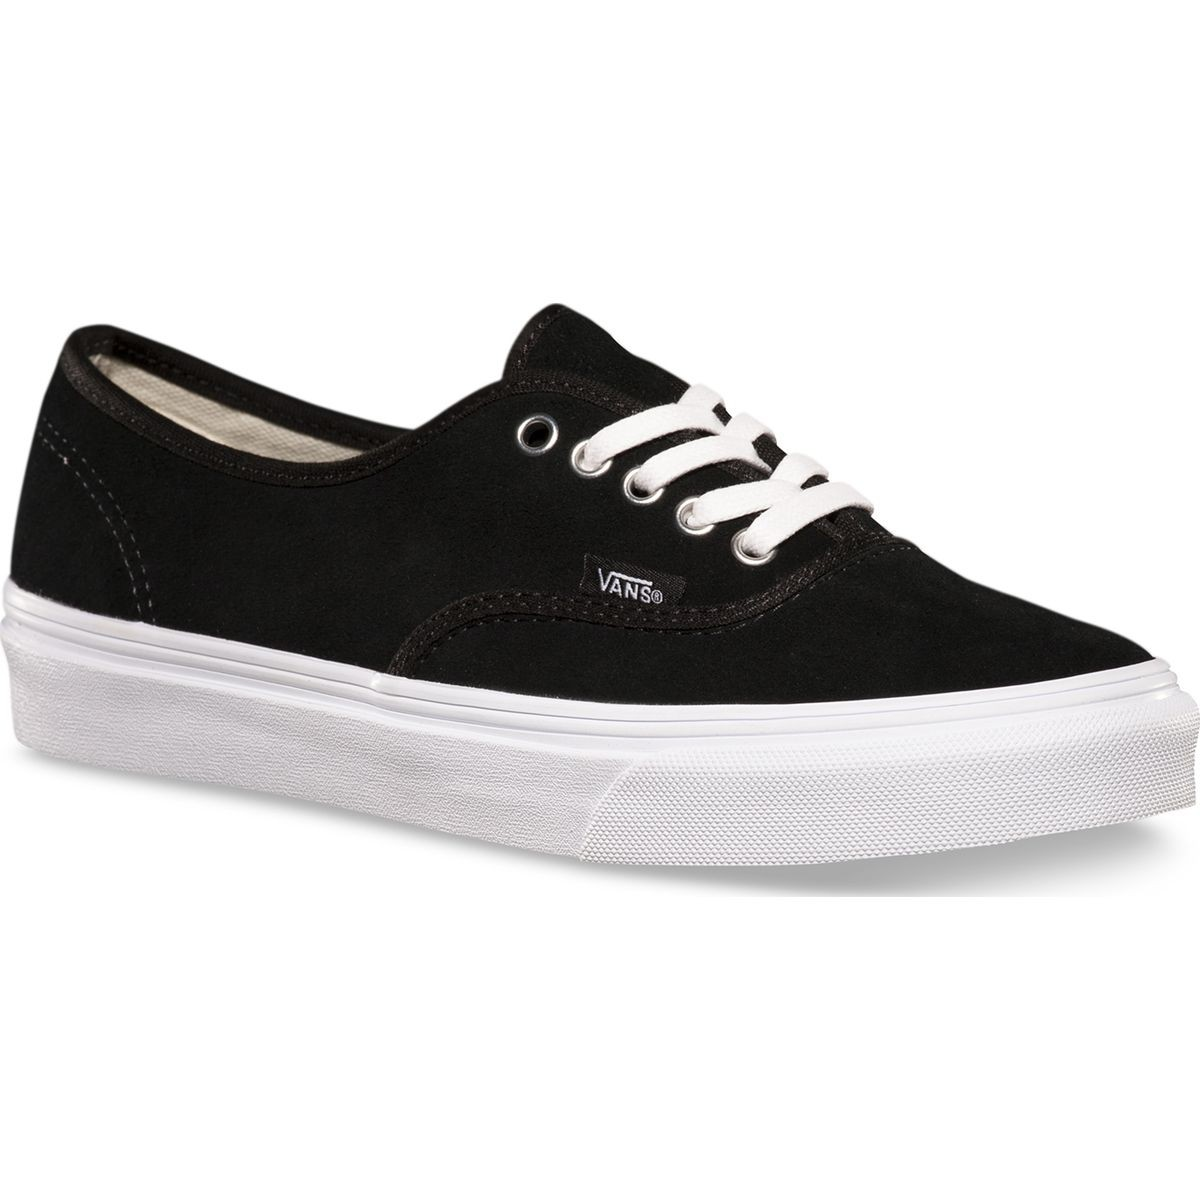 afff583fcdd6 Vans Authentic Slim Shoes - Black Suede - 6.0